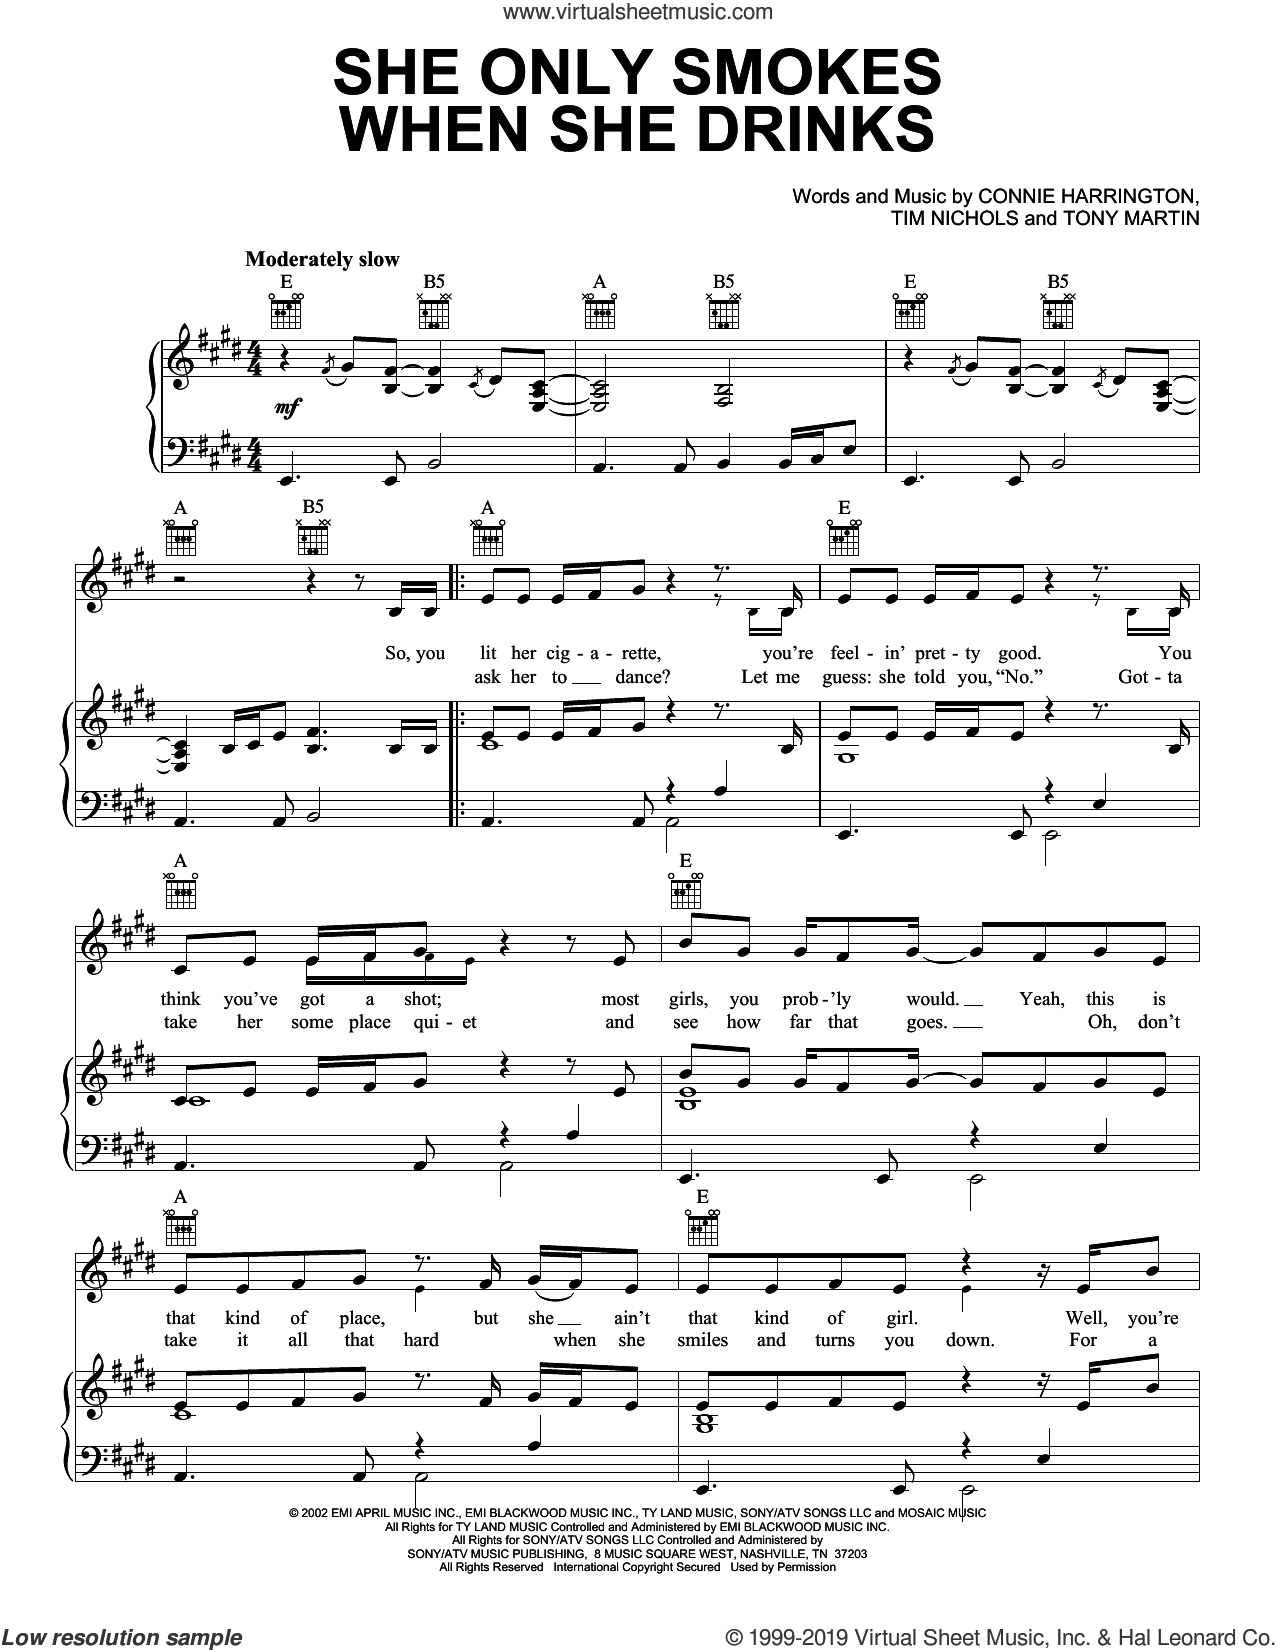 She Only Smokes When She Drinks sheet music for voice, piano or guitar by Joe Nichols, Connie Harrington, Tim Nichols and Tony Martin, intermediate skill level